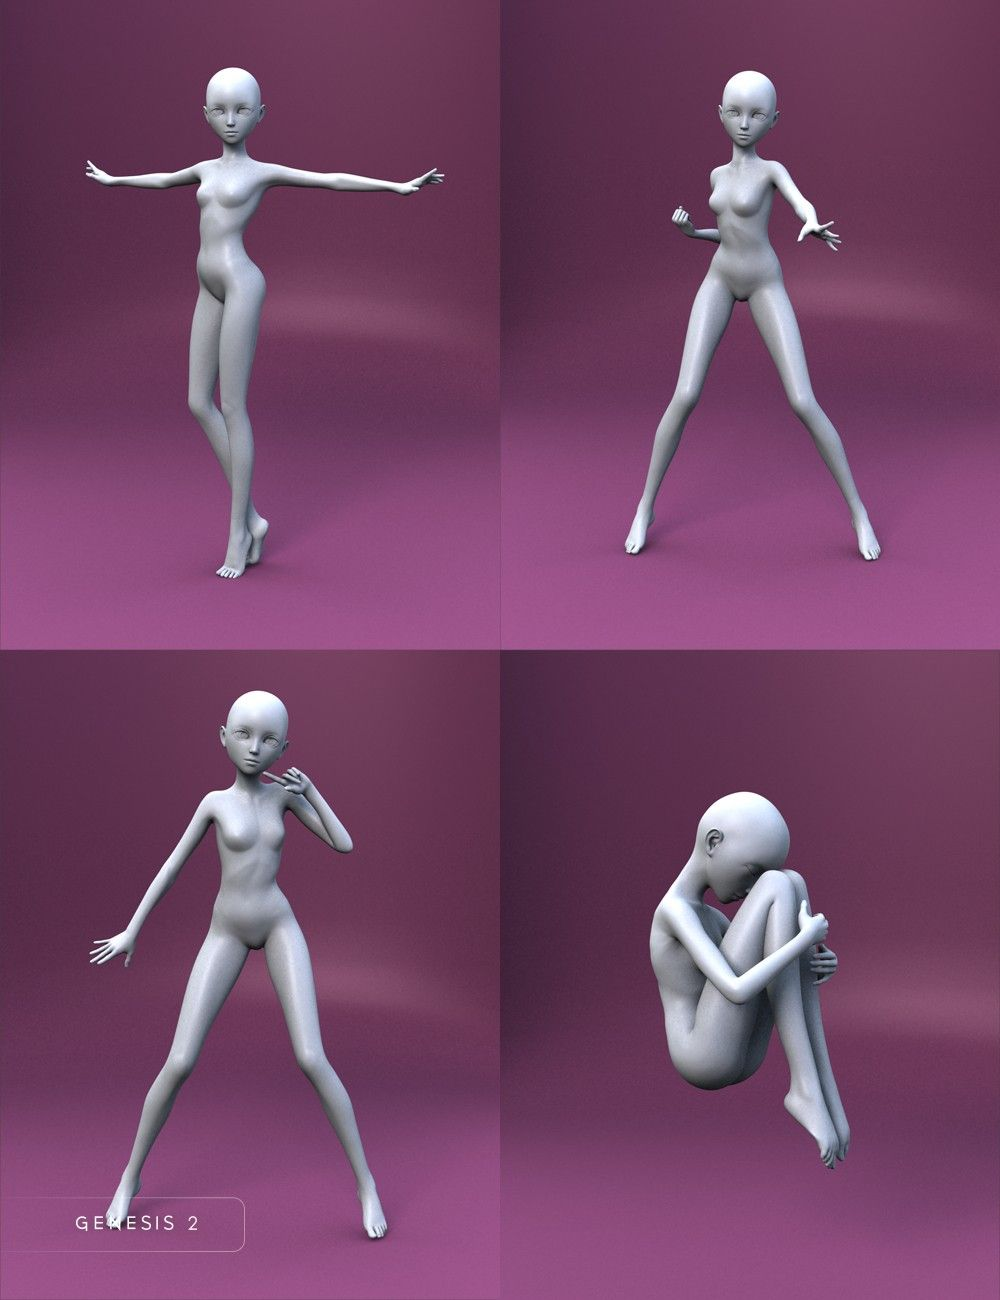 Bell Anime Poses For Keiko 6 And Aiko 6 3d Models And 3d Software By Daz 3d Anime Poses Art Reference Poses Art Poses